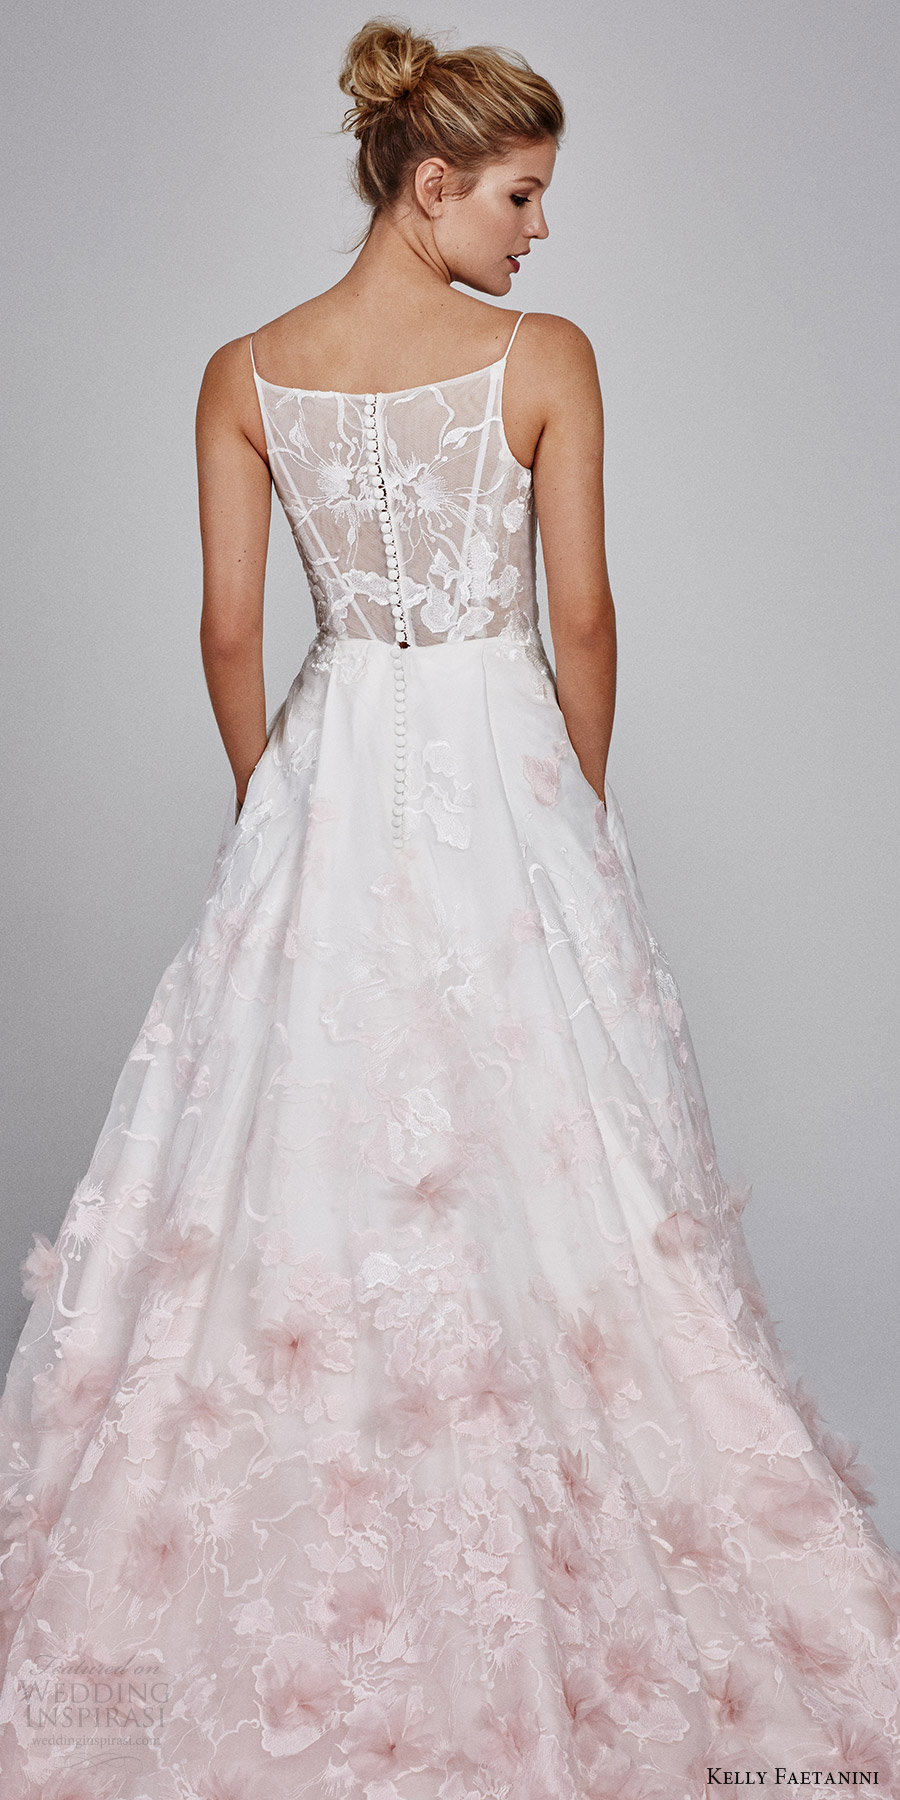 kelly faetanini fall 2017 sleeveless vneck silk organz petal embellished skirt blush ombre ball gown wedding dress (willow) zbv illusion back buttons